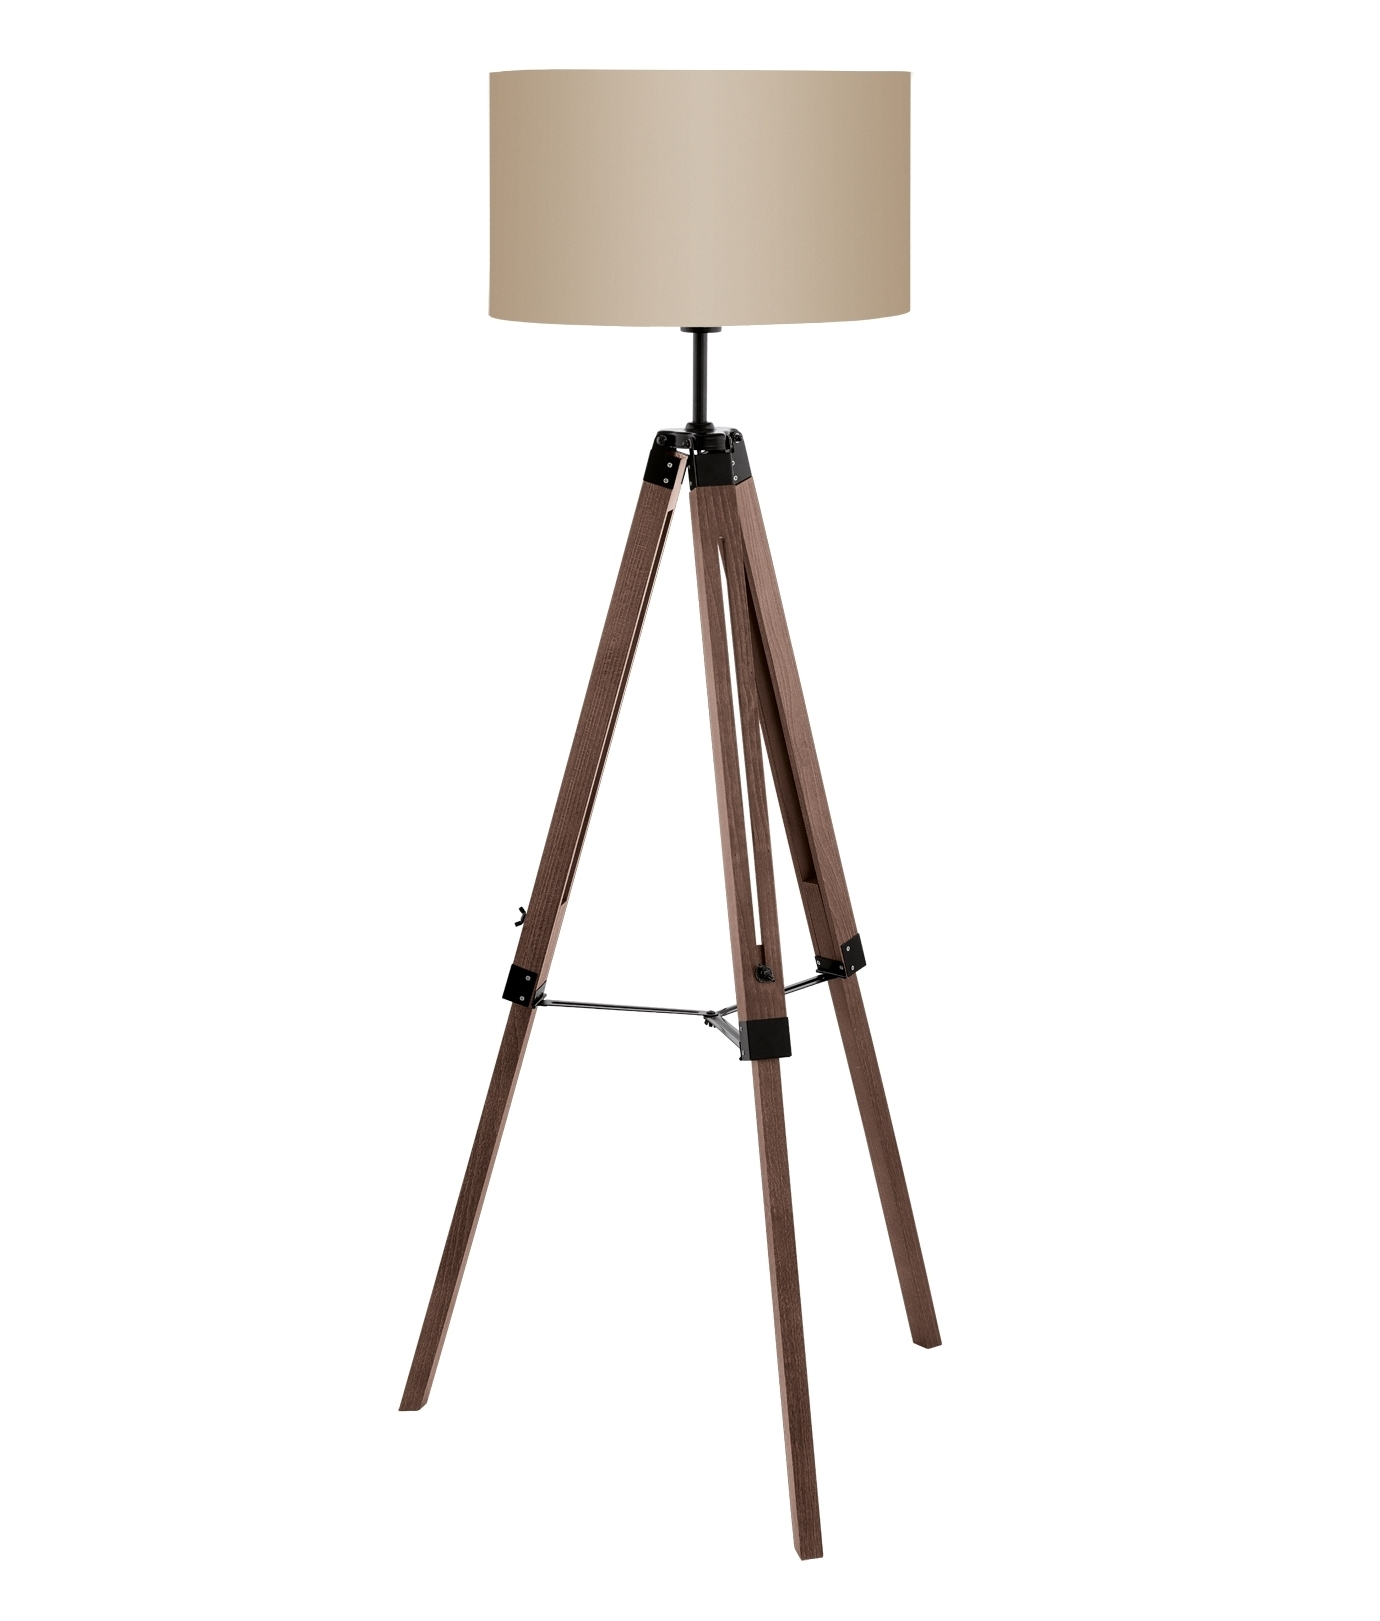 Wooden Tripod Floor Lamp With Large Shade In Two Finishes